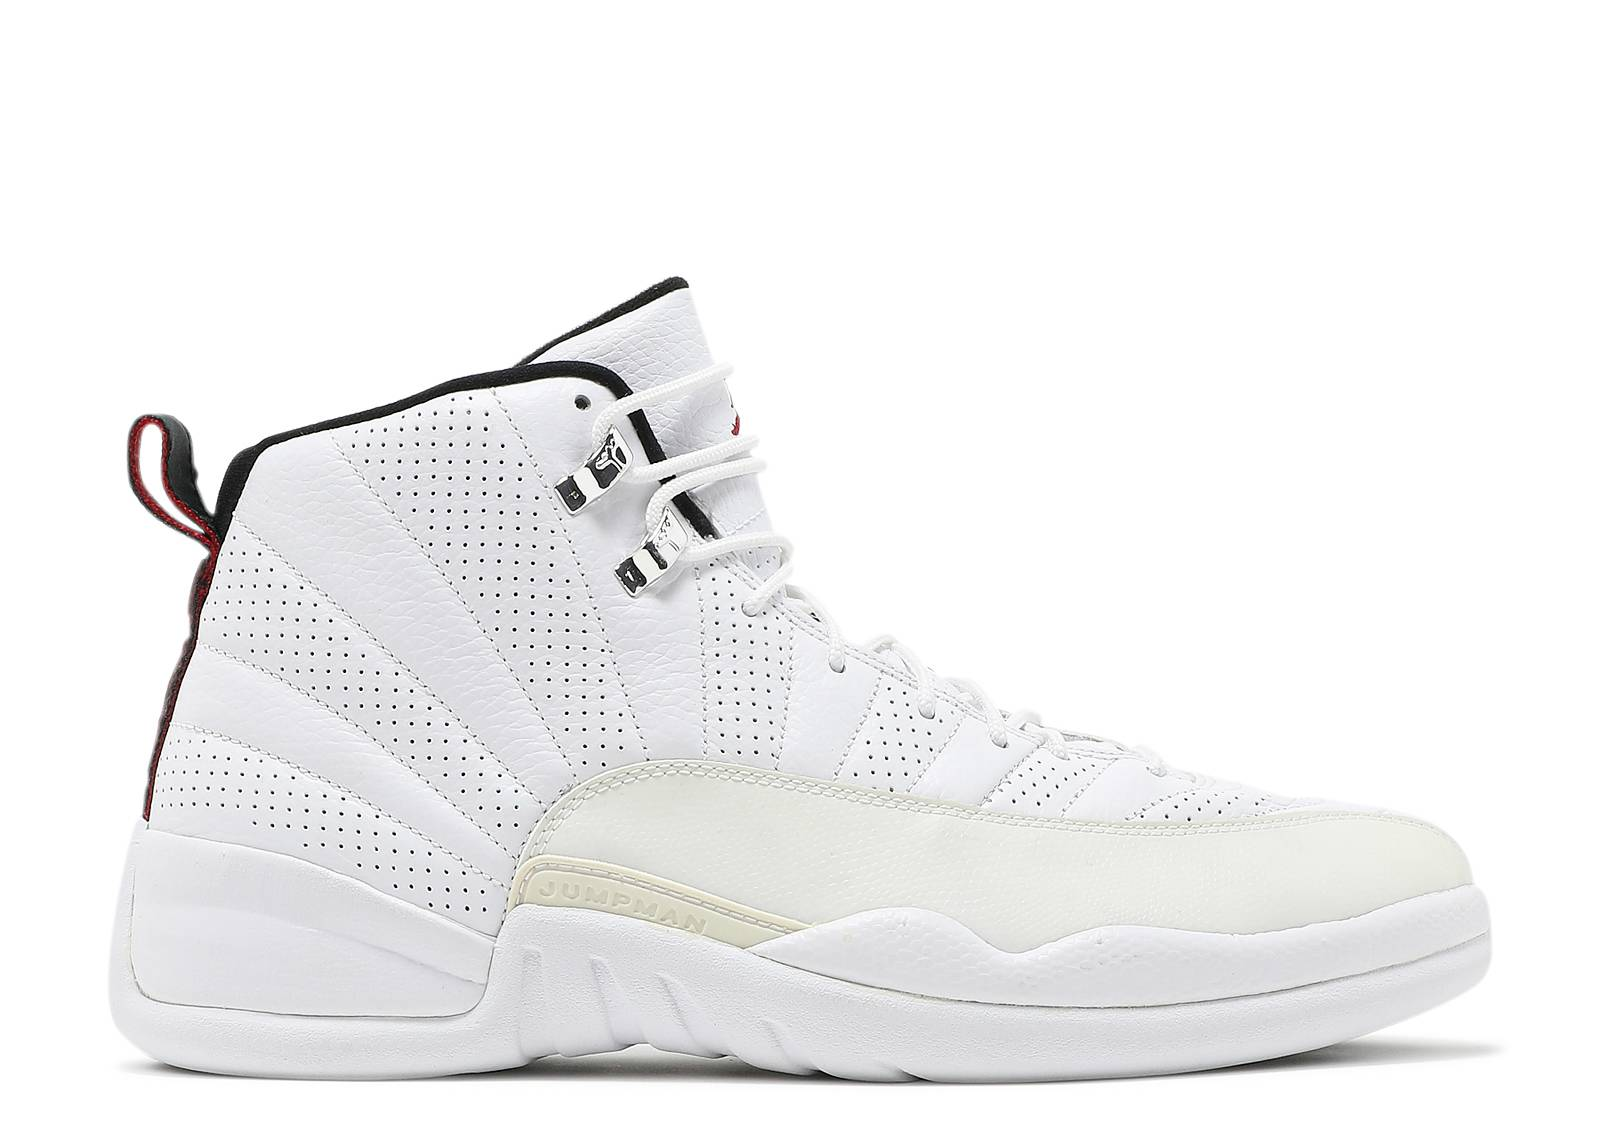 detailed look 5a16a d4662 Air Jordan 12 Retro 'Rising Sun'